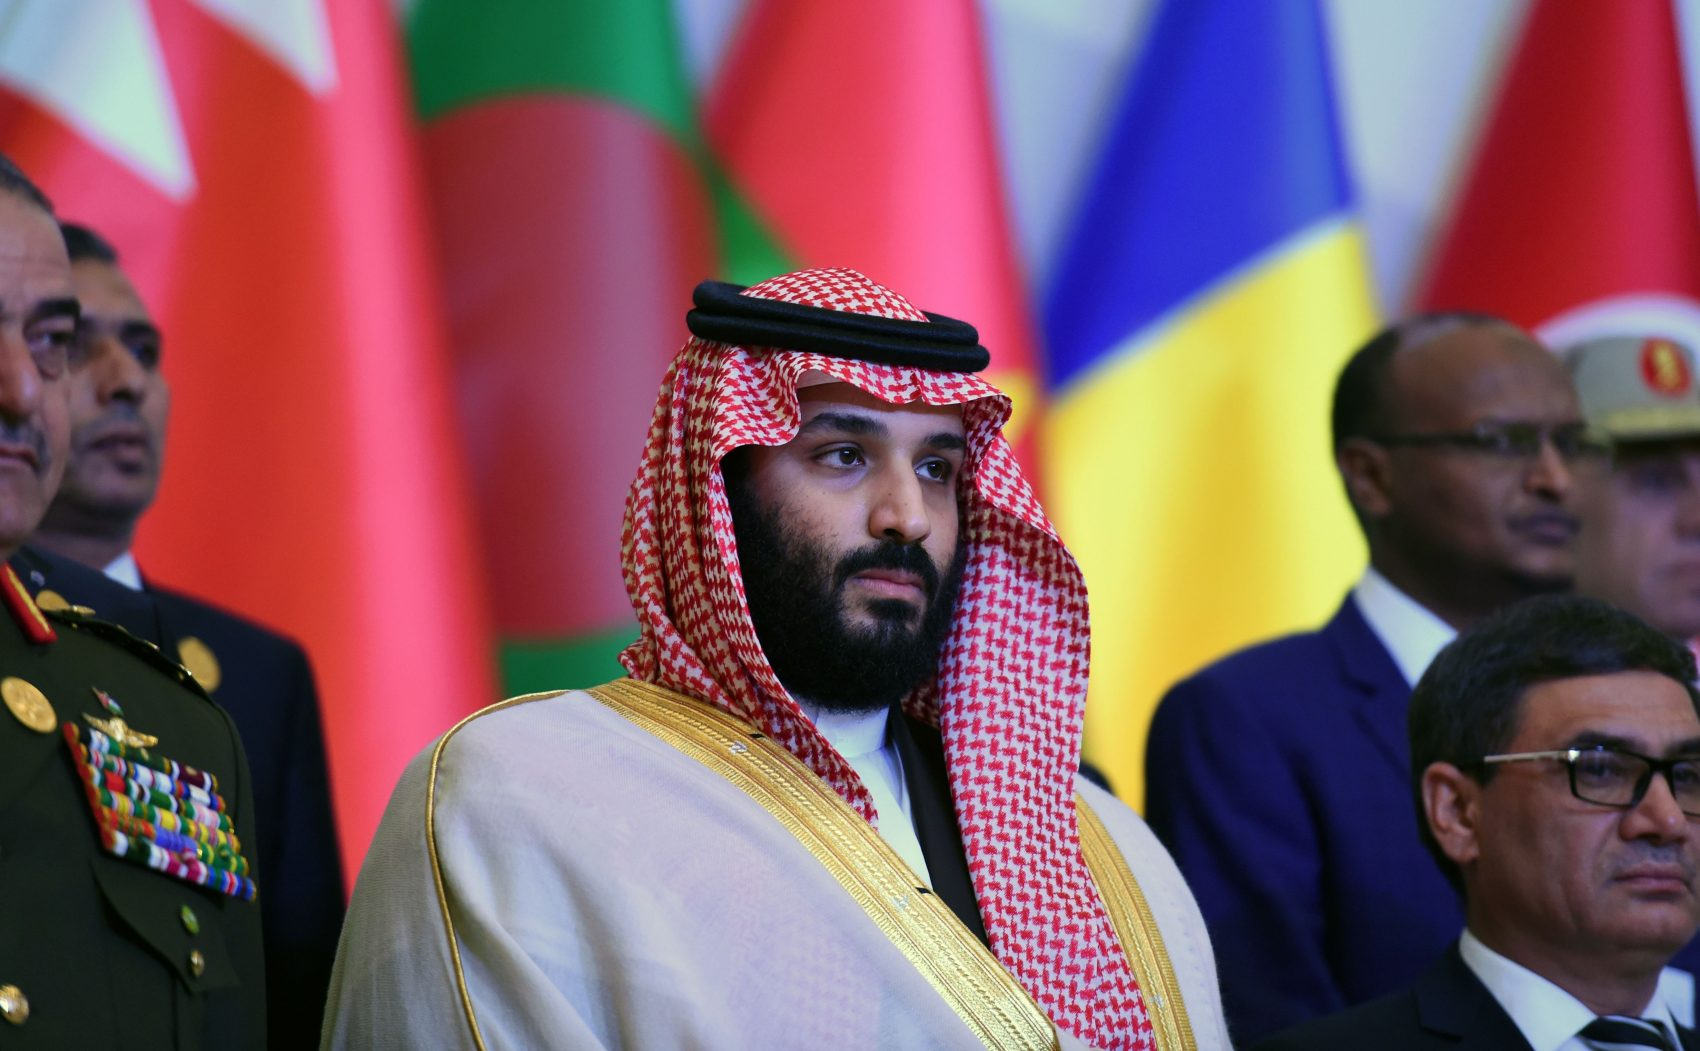 Saudi Crown Prince and Defense Minister Mohammed bin Salman arrives to attend the first meeting of the defense ministers and officials of the 41-member Saudi-led Muslim counterterrorism alliance in the capital Riyadh on Nov. 26, 2017. (Fayez Nureldine/AFP/Getty Images)